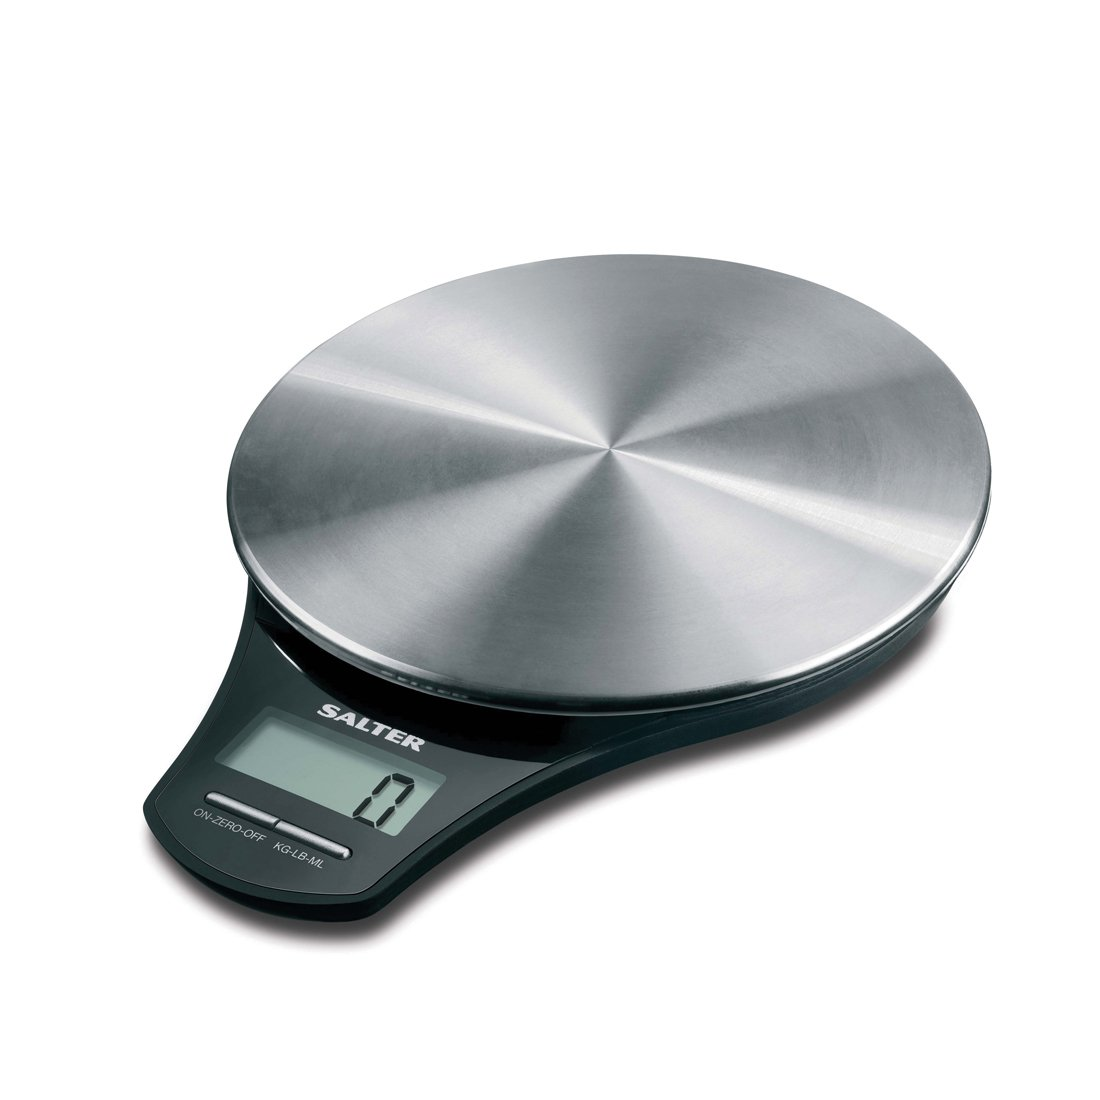 Salter Stainless Steel Digital Kitchen Weighing Scales - Electronic ...